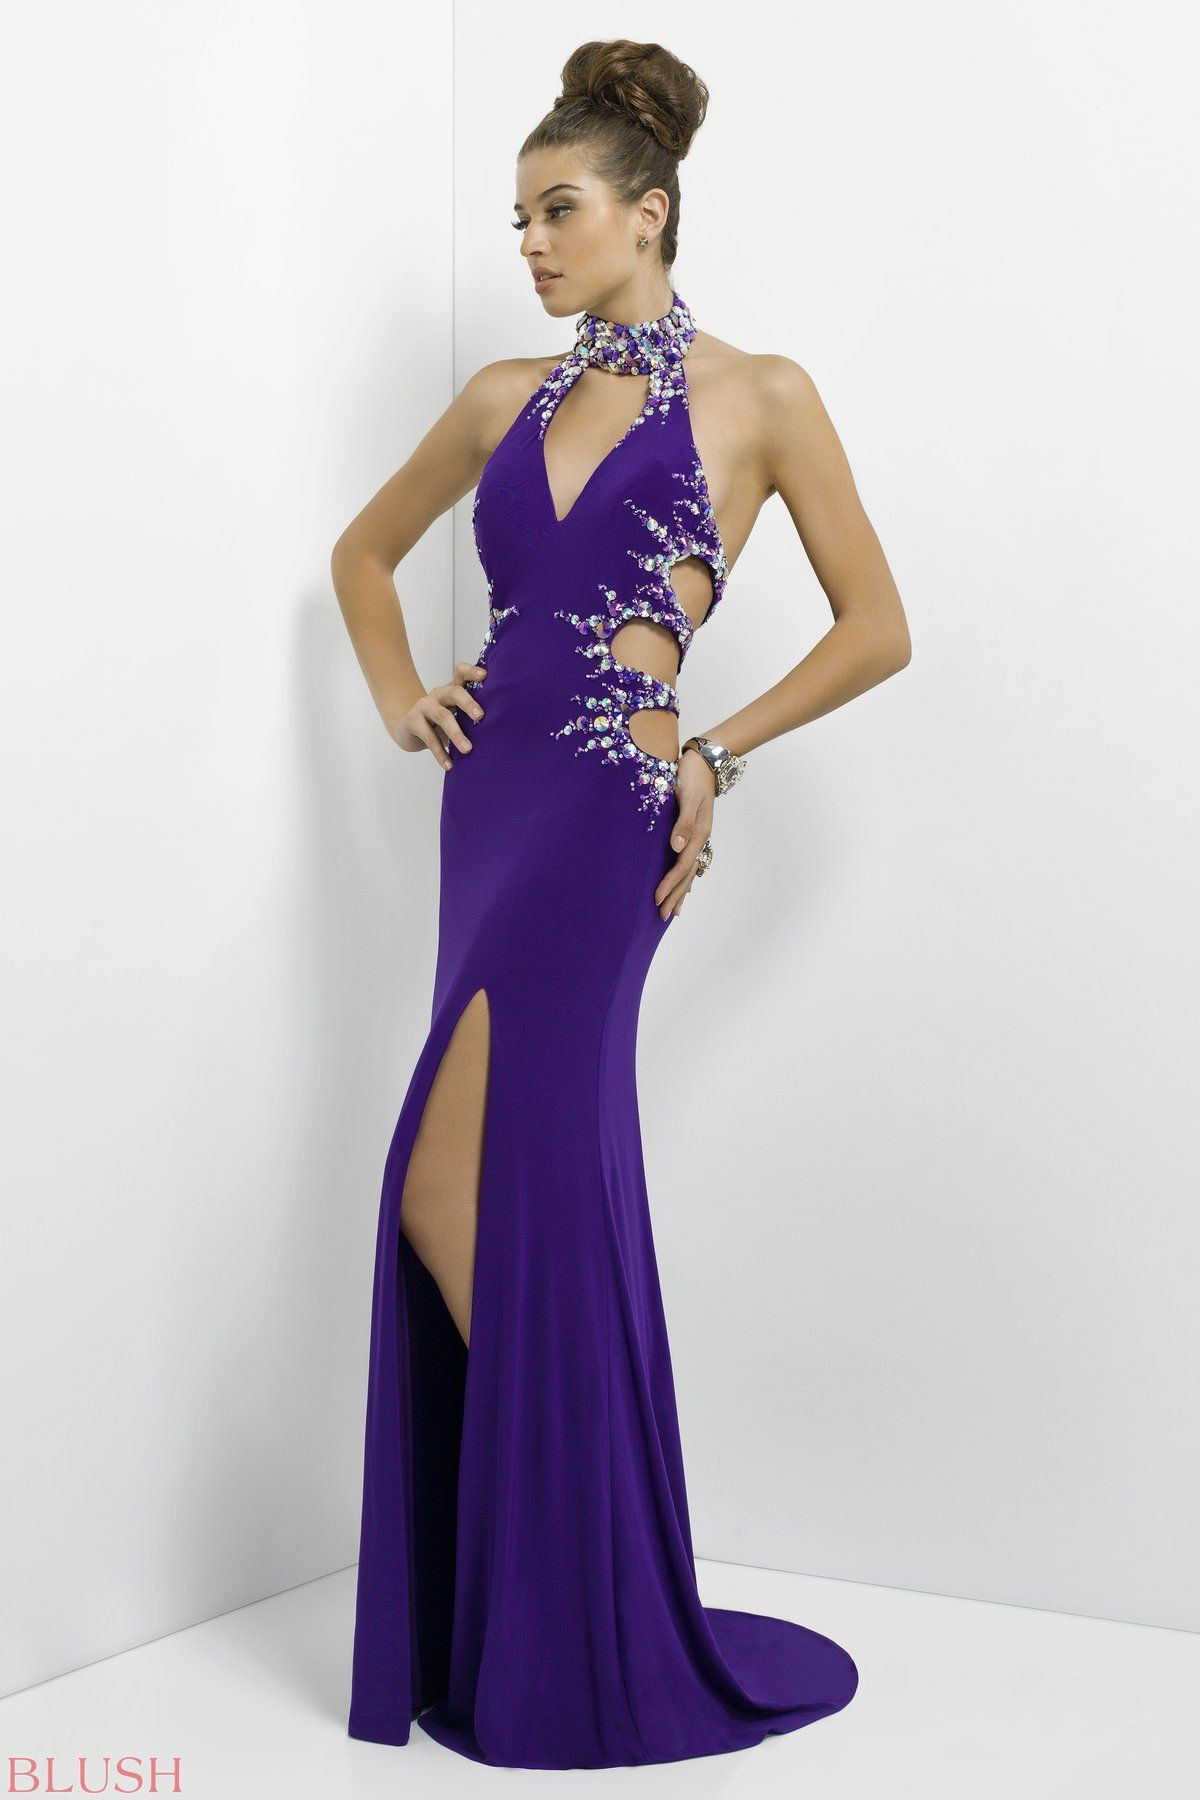 07ab709c68dc Rock the dance floor! This sexy gown has a sparkling beaded choker ...